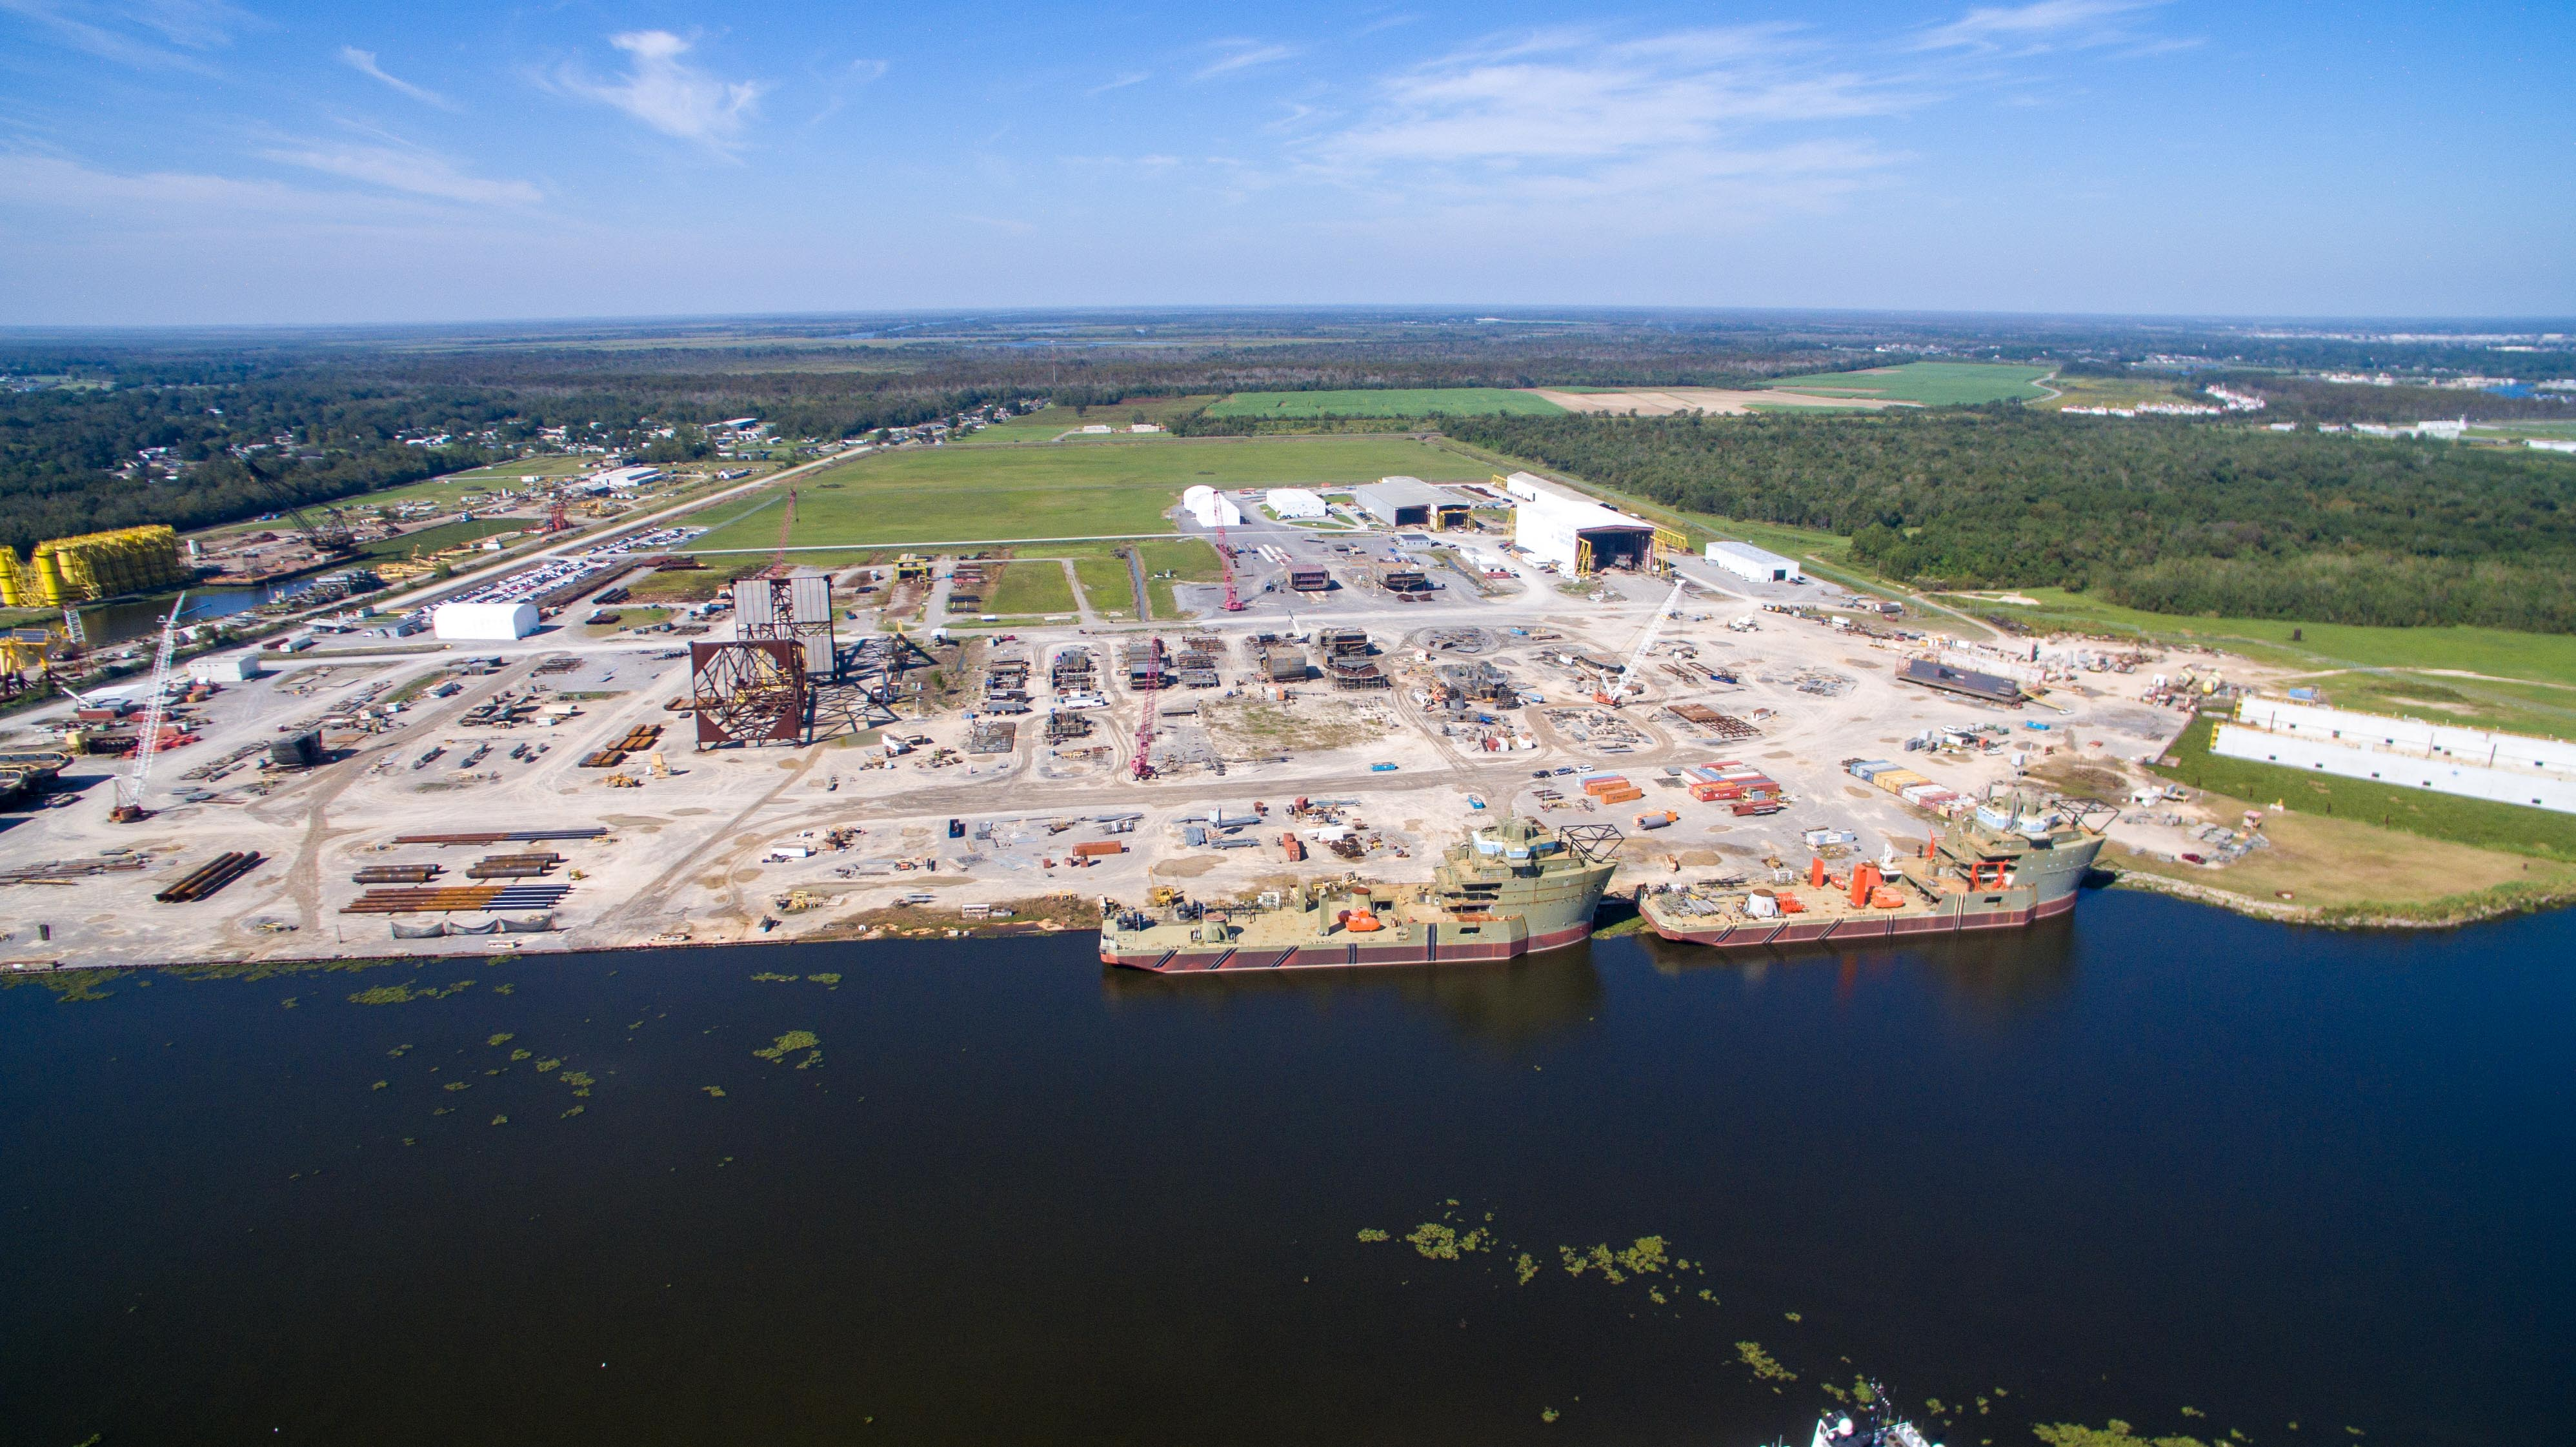 Aerial Photography of the Gulf Island Fabrication Facility